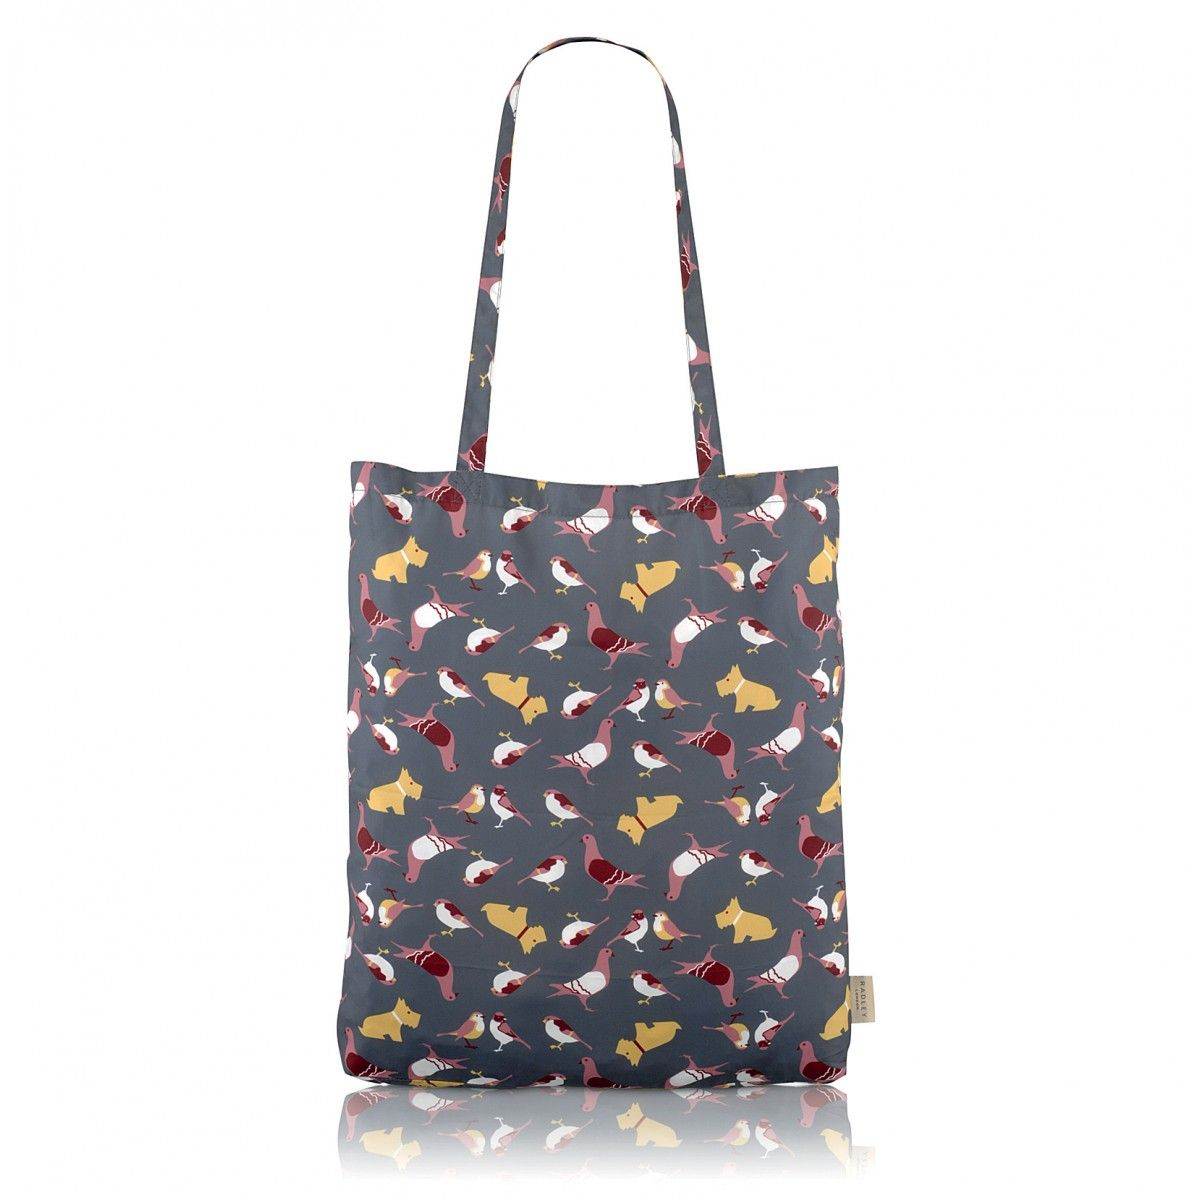 a little bird told me foldaway shopper > buy shopper online at a little bird told me foldaway shopper > buy shopper online at radley accessories windowshop little birds and birds